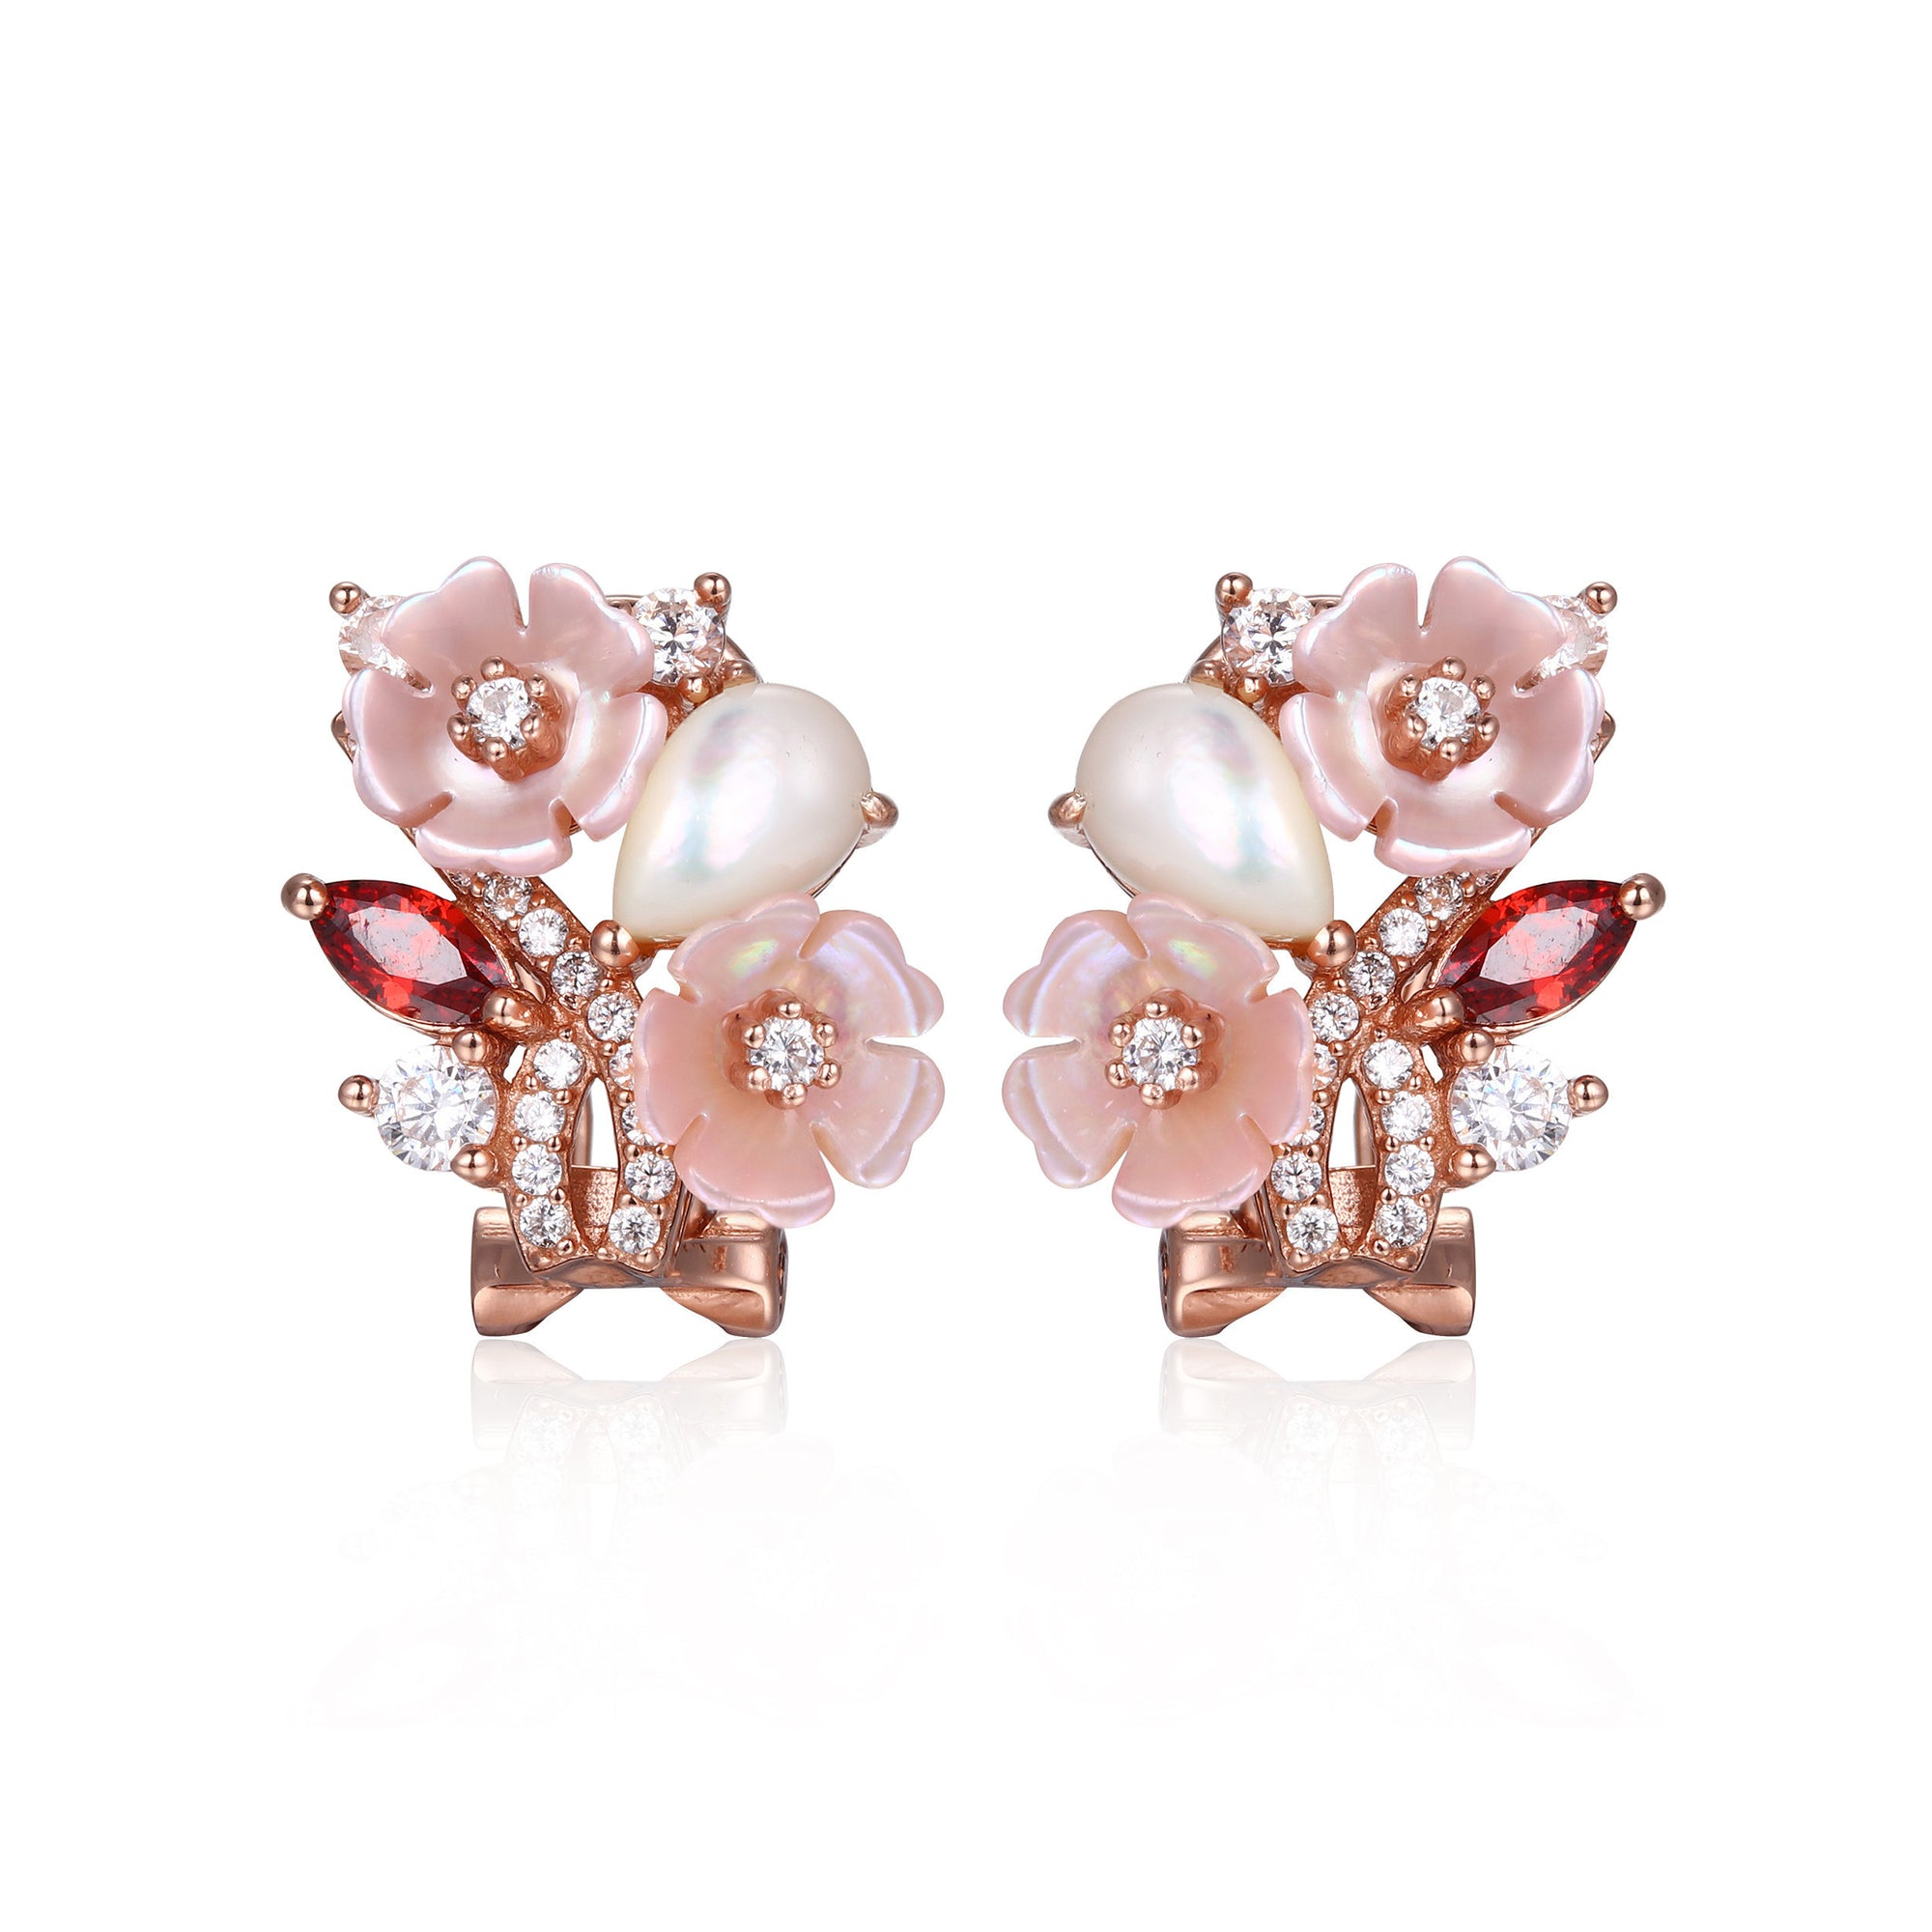 Cherry Champagne Earrings - penelope-it.com